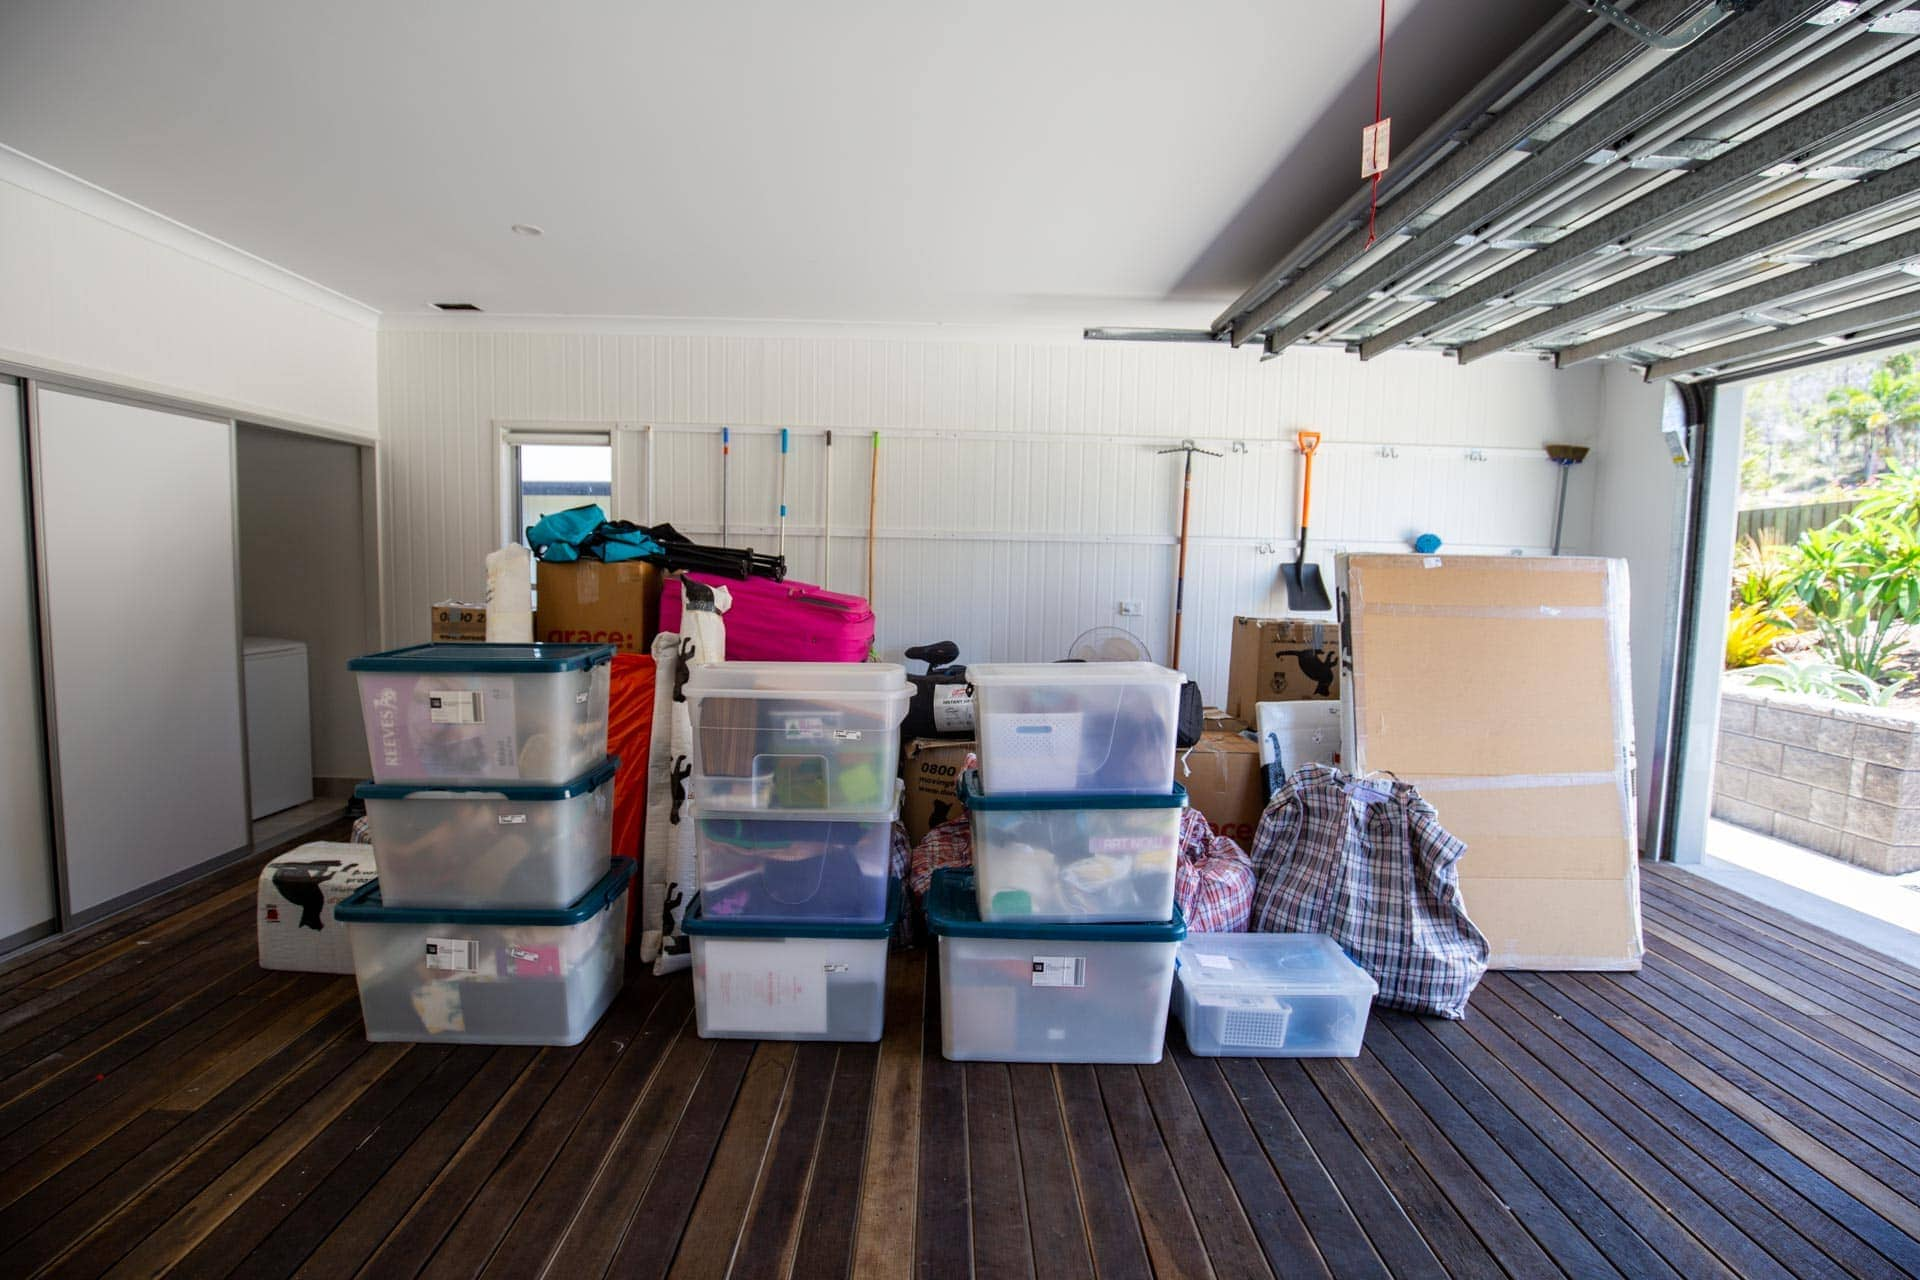 interstate-removalists-grace-removals-1-9